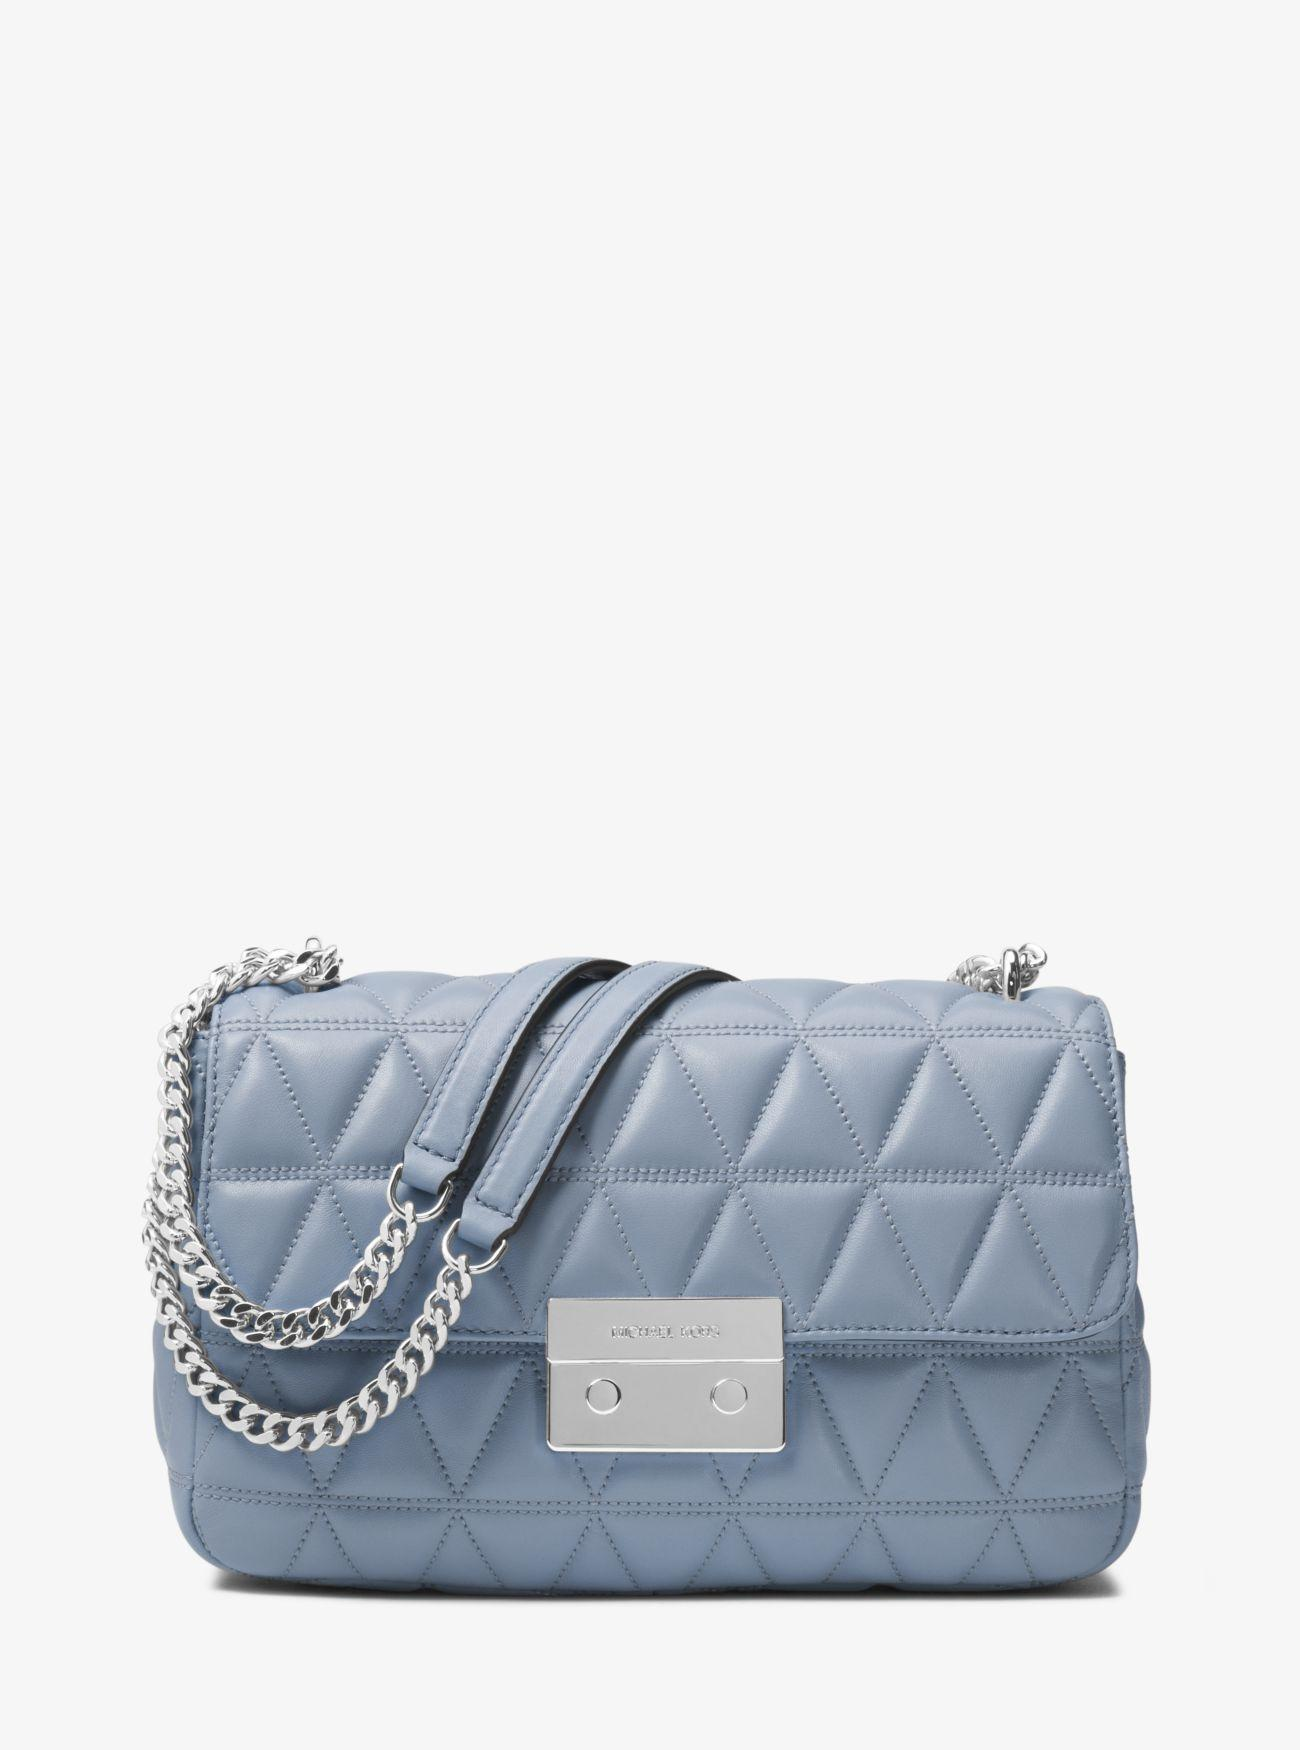 Michael Kors Pale Blue Leather Sloan Large Quilted-leather Shoulder Bag - Tradesy